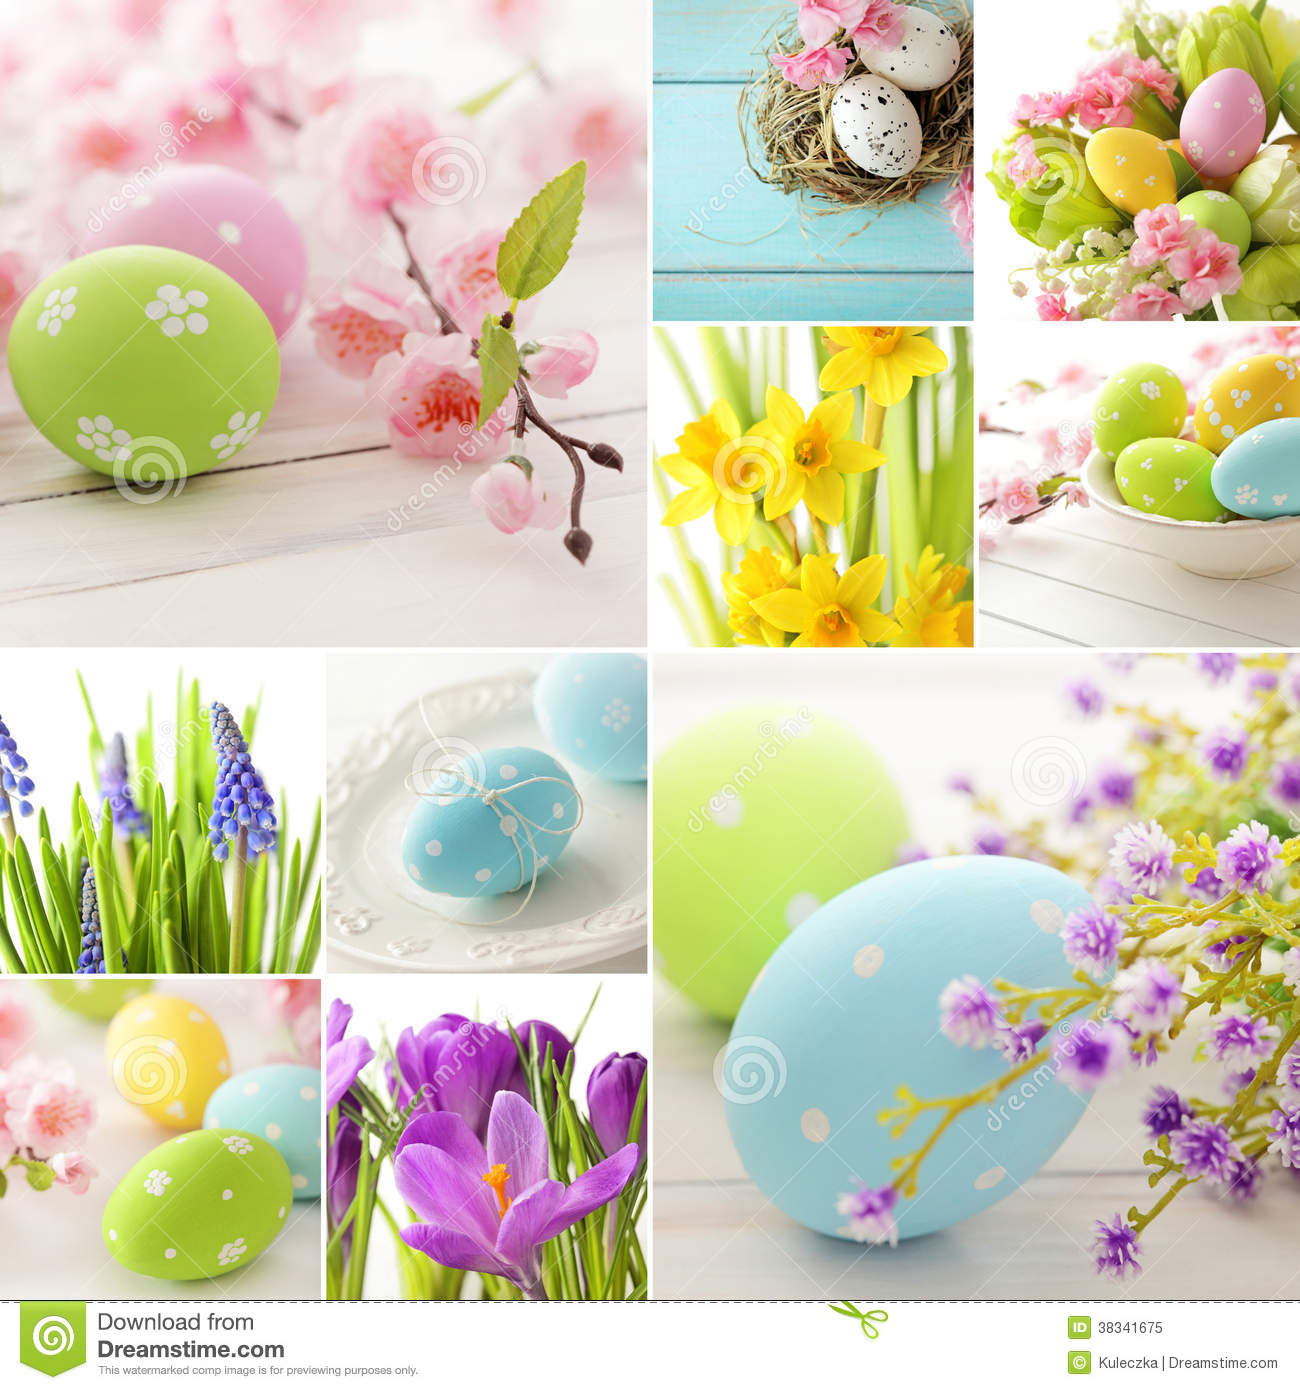 Collage de Pascua